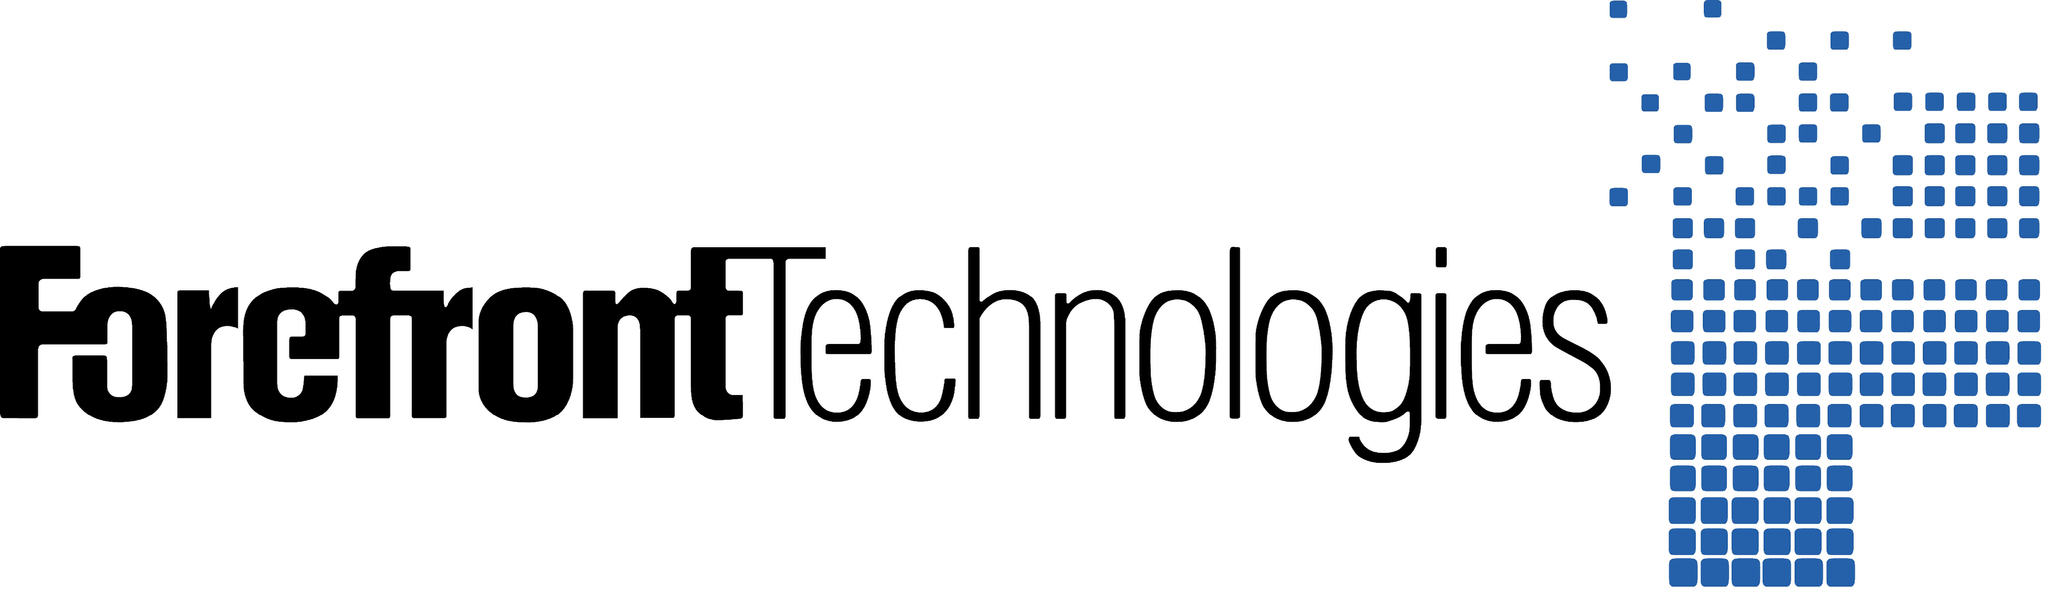 Forefront Technologies